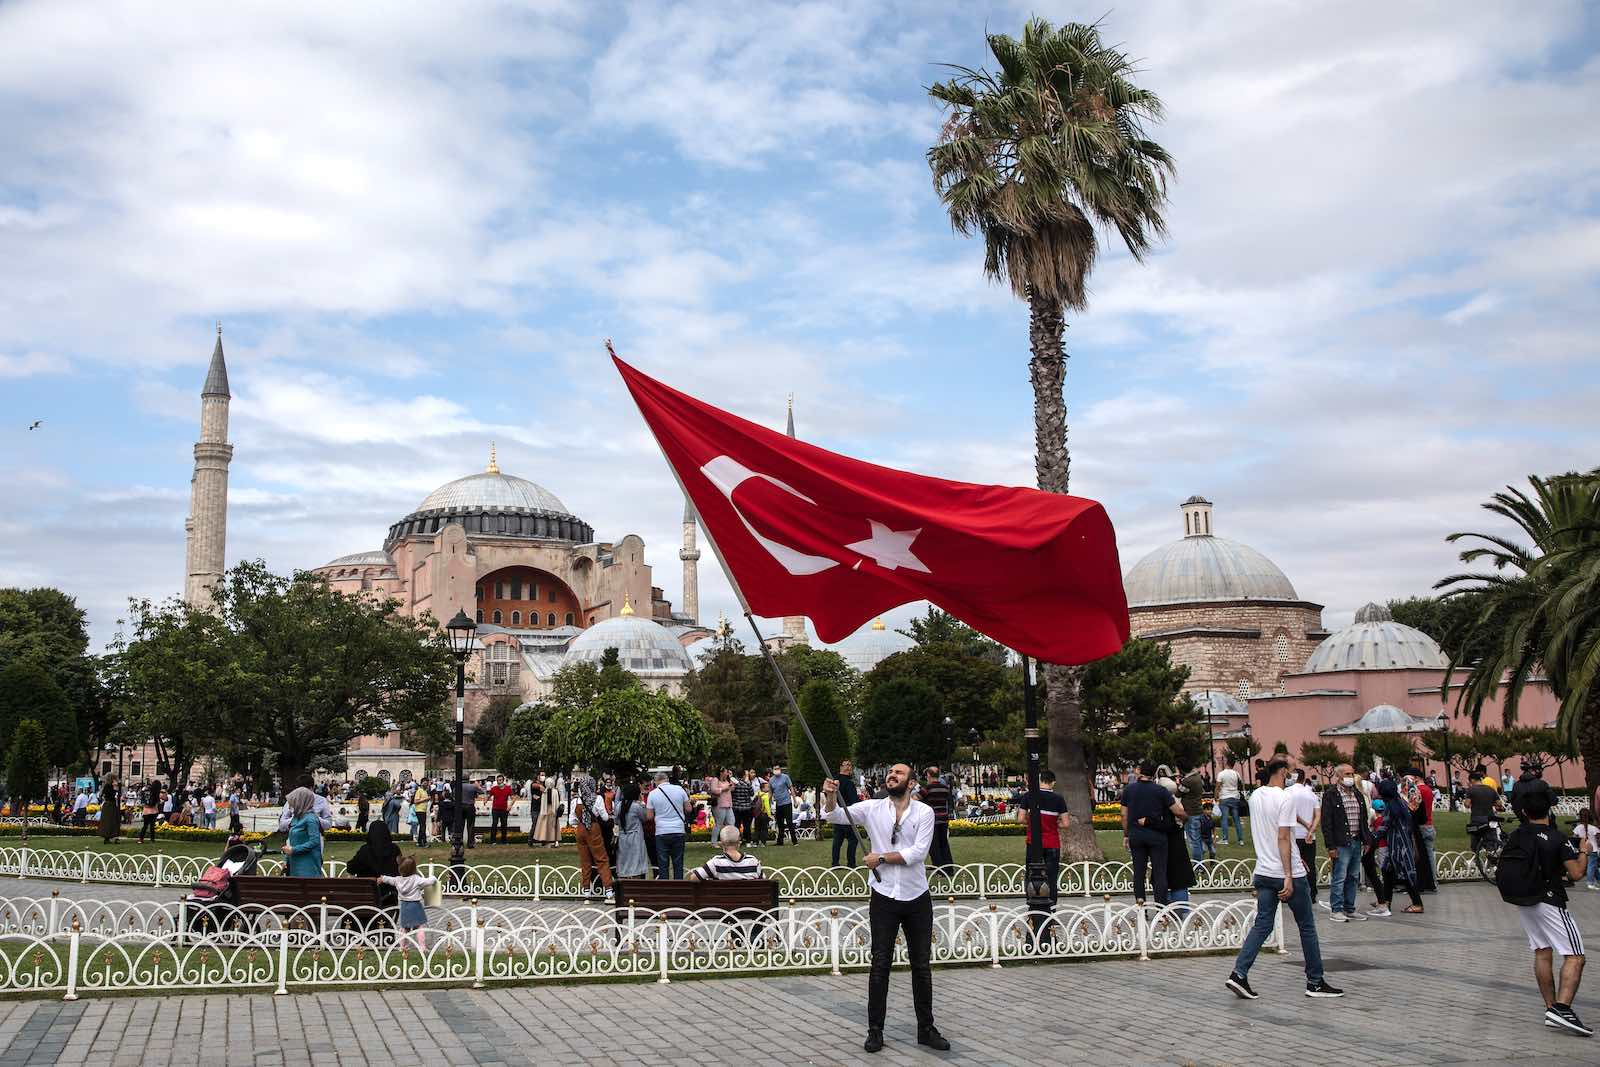 A man waves Turkey's flag near the Hagia Sophia Mosque on the fourth anniversary of the 2016 failed coup attempt, Istanbul, 15 July 2020 (Chris McGrath/Getty Images)